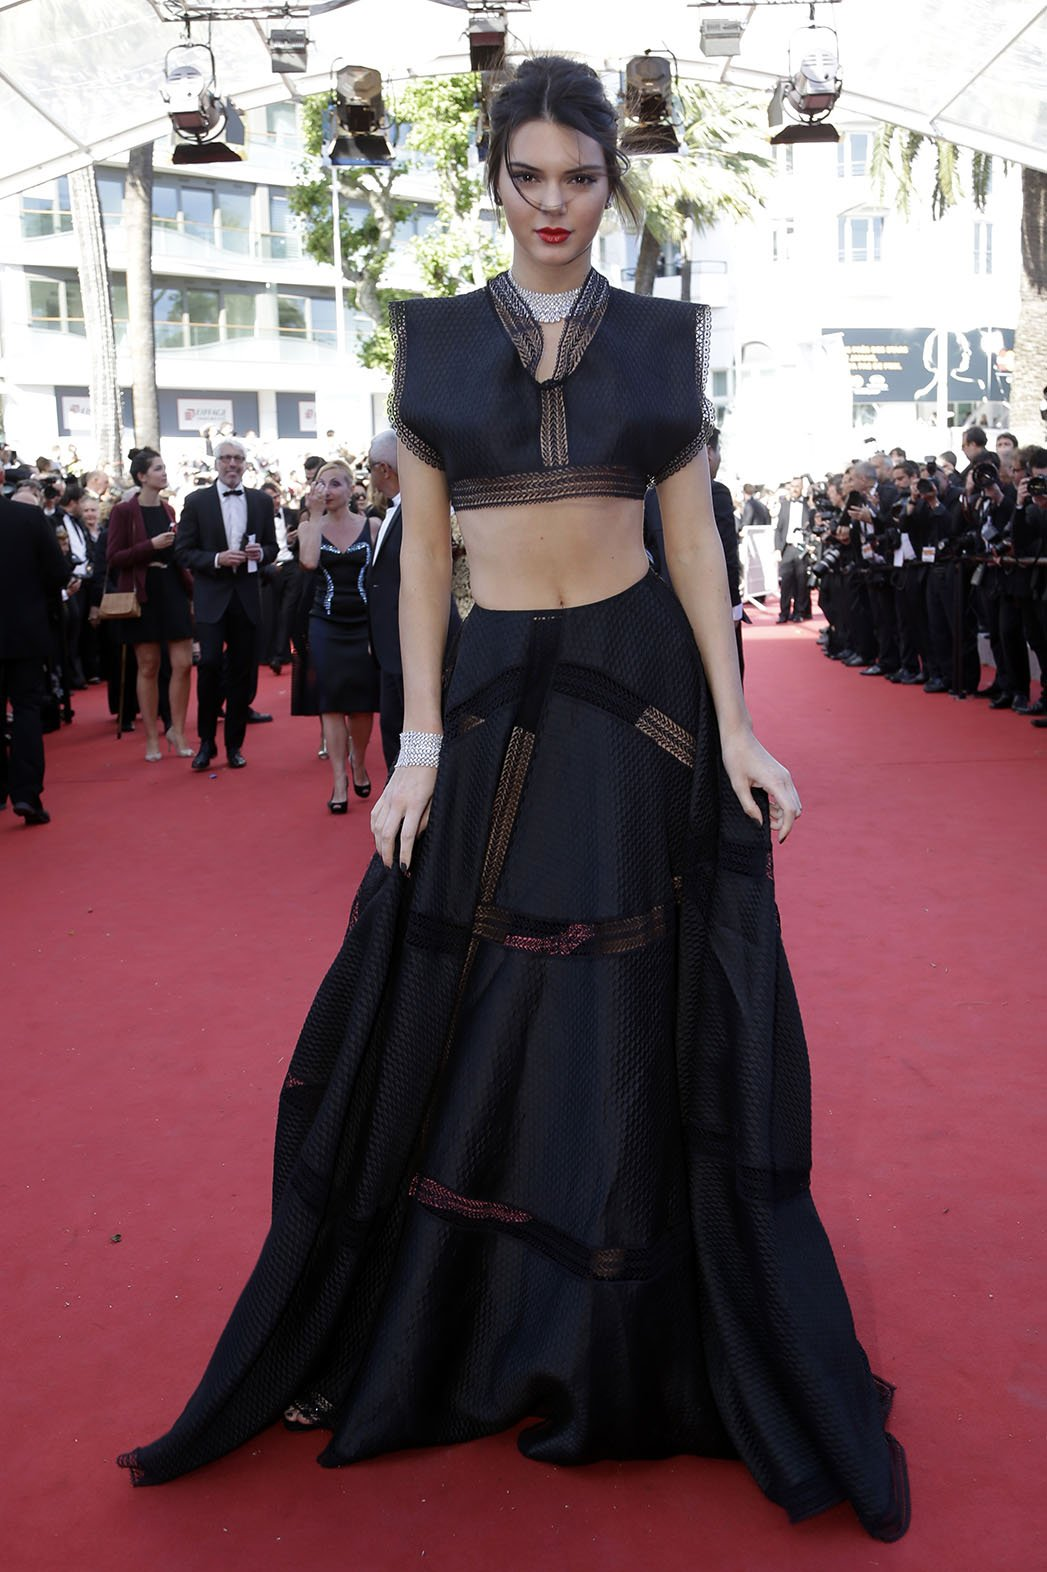 http://enfilme.com/img/content/kendall_jenner_cannes2015_Enfilme_53r95.jpg